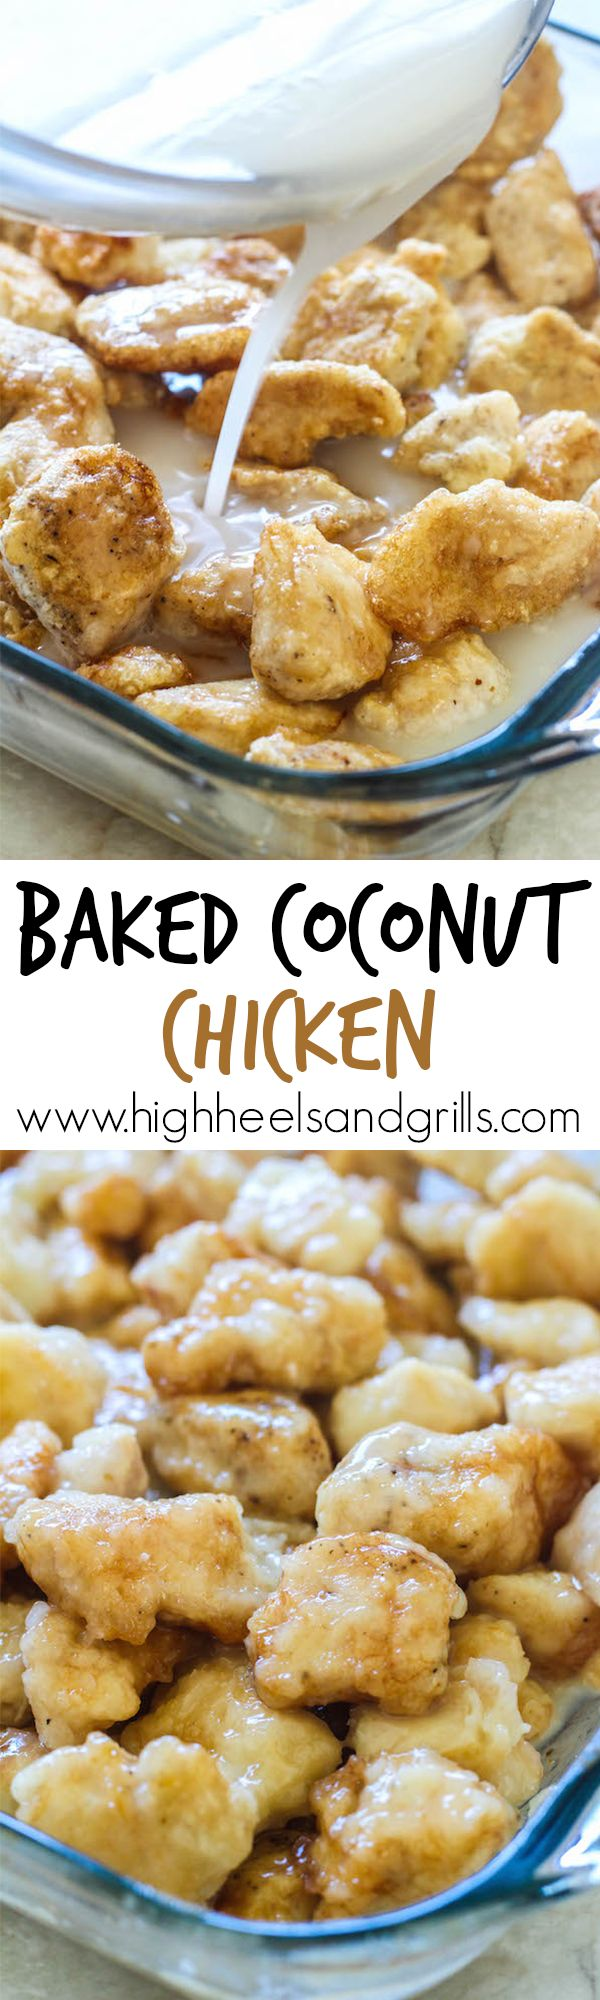 This Baked Coconut Chicken is better than take-out and will become your new favorite Asian dinner recipe! It's easy to make and tastes so yummy!